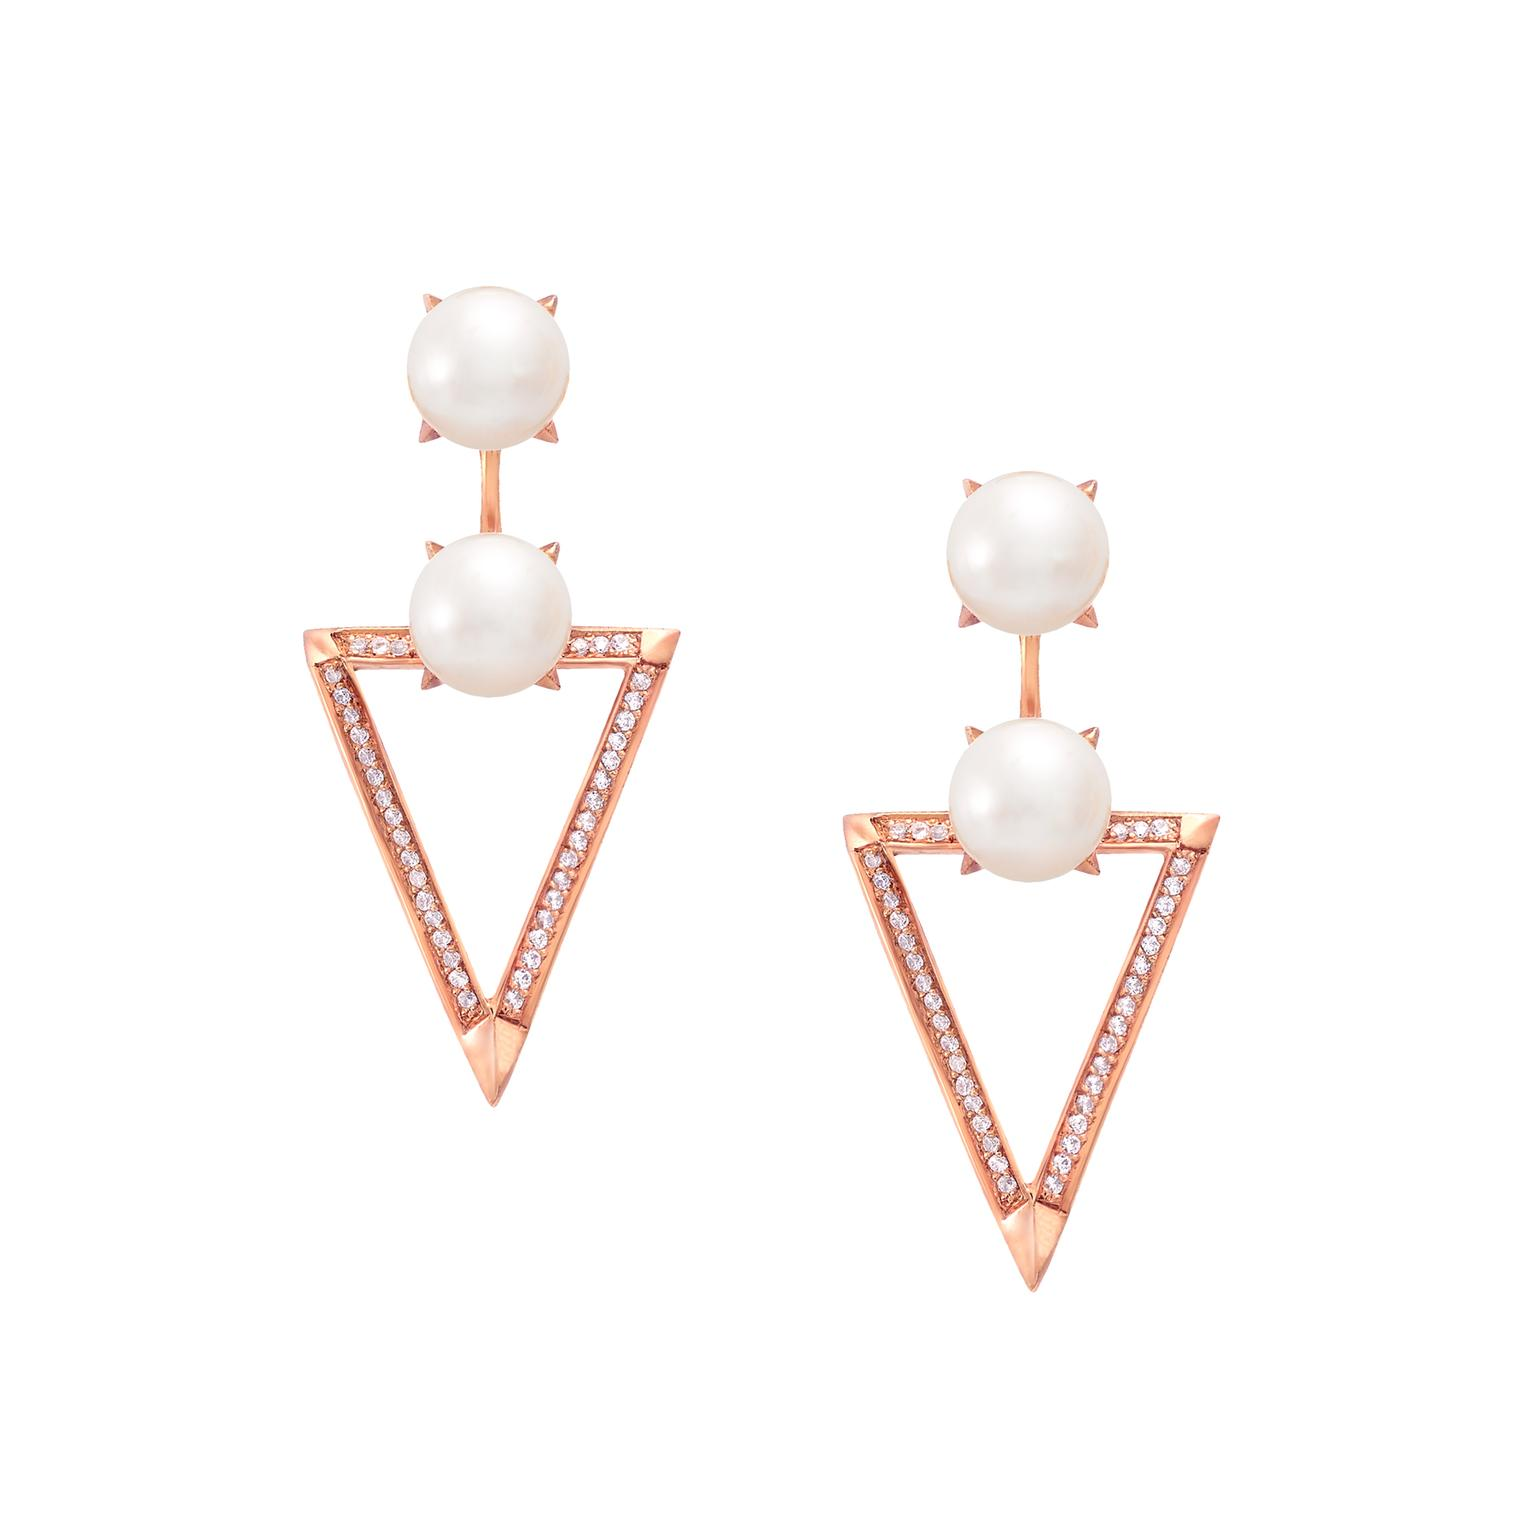 Sammie Jo Coxon Demeter pearl earrings